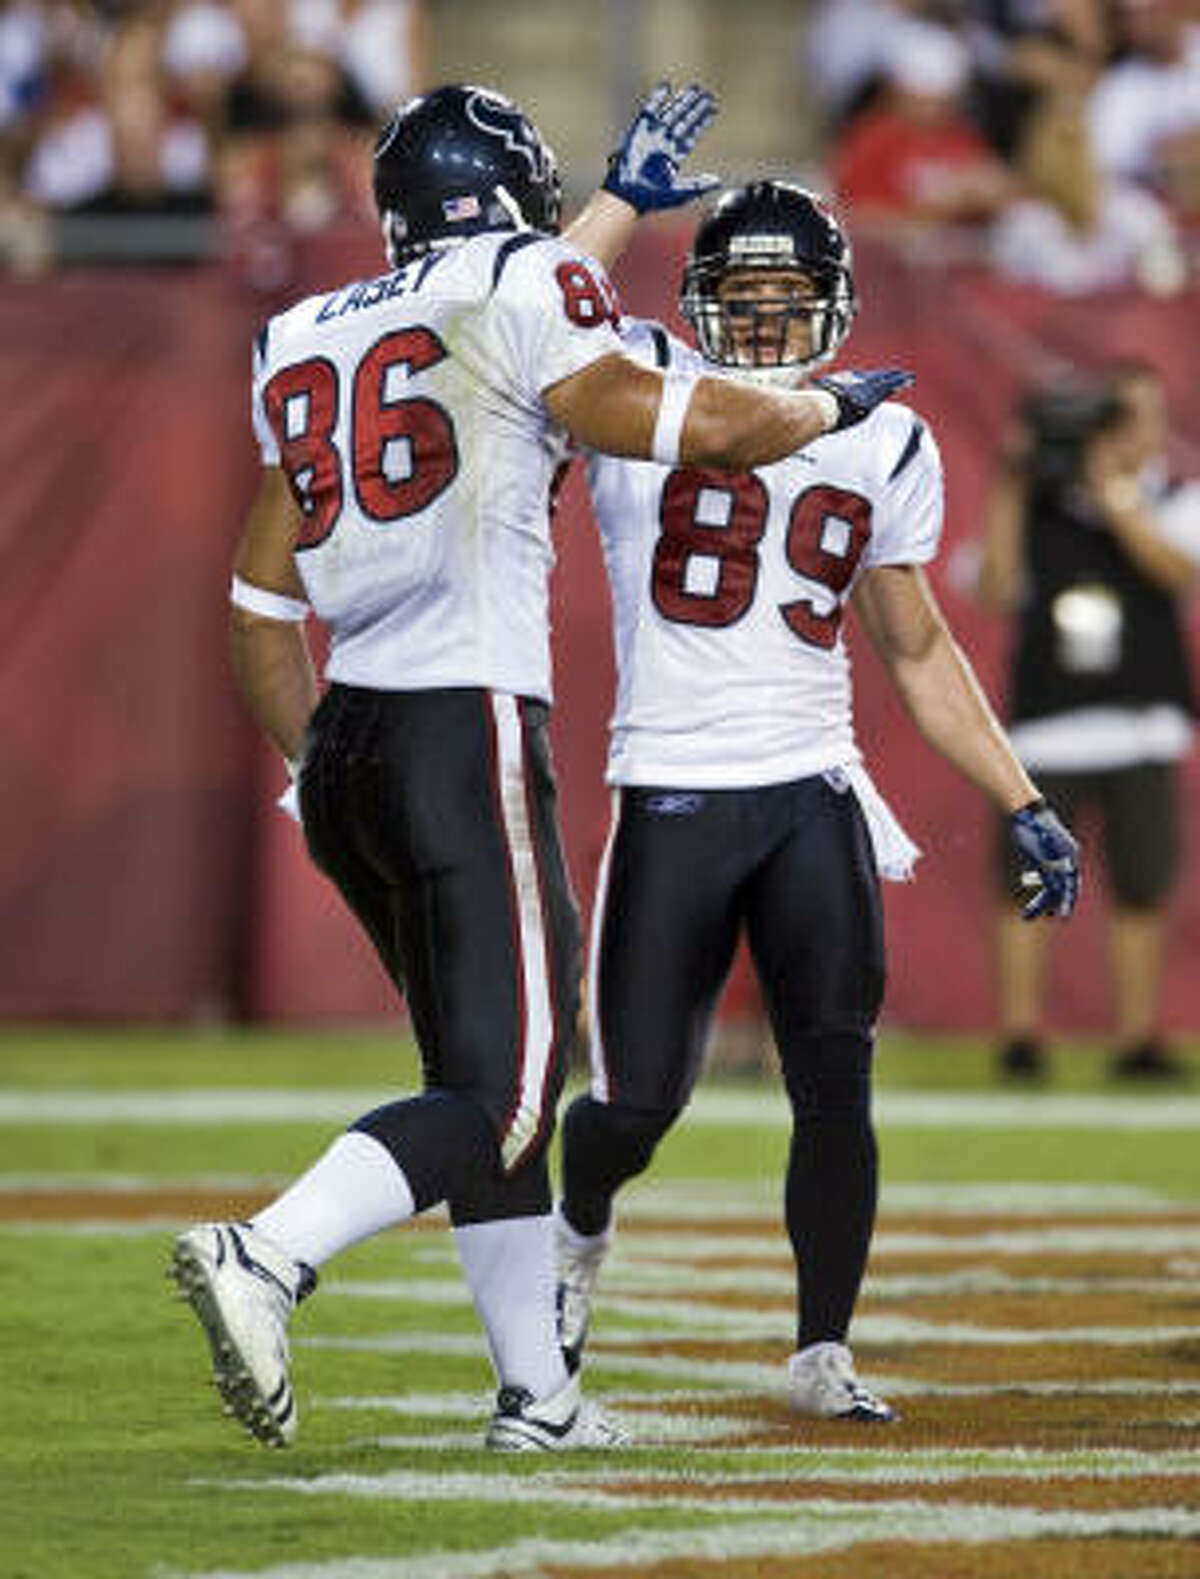 The Texans' David Anderson, right, congratulates James Casey after Casey's 11-yard touchdown catch from quarterback Rex Grossman during the second quarter.